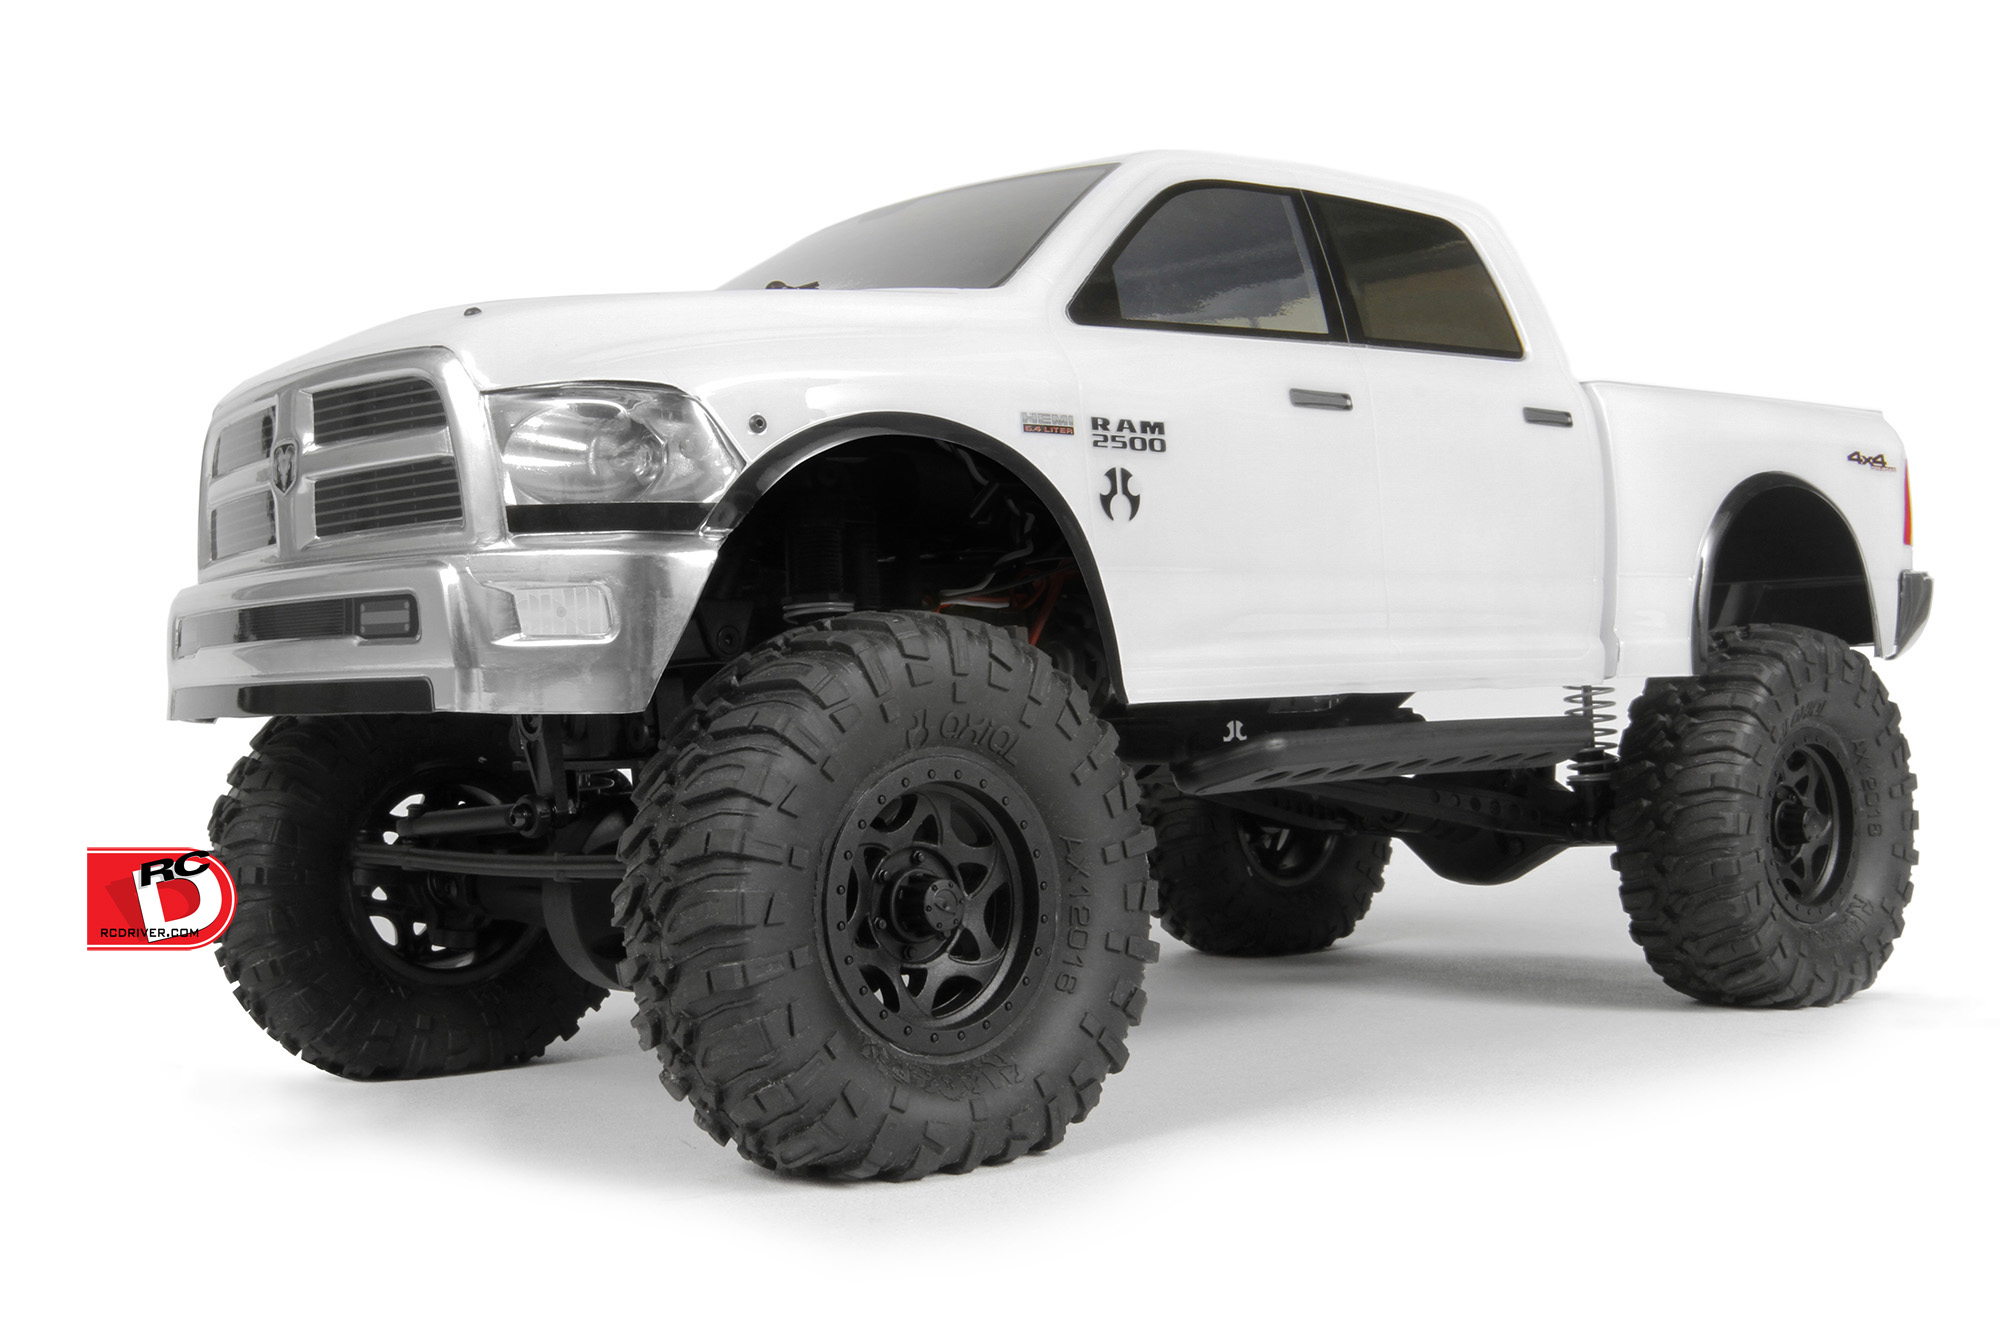 Axial Racing - Ram 2500 Power Wagon Body copy